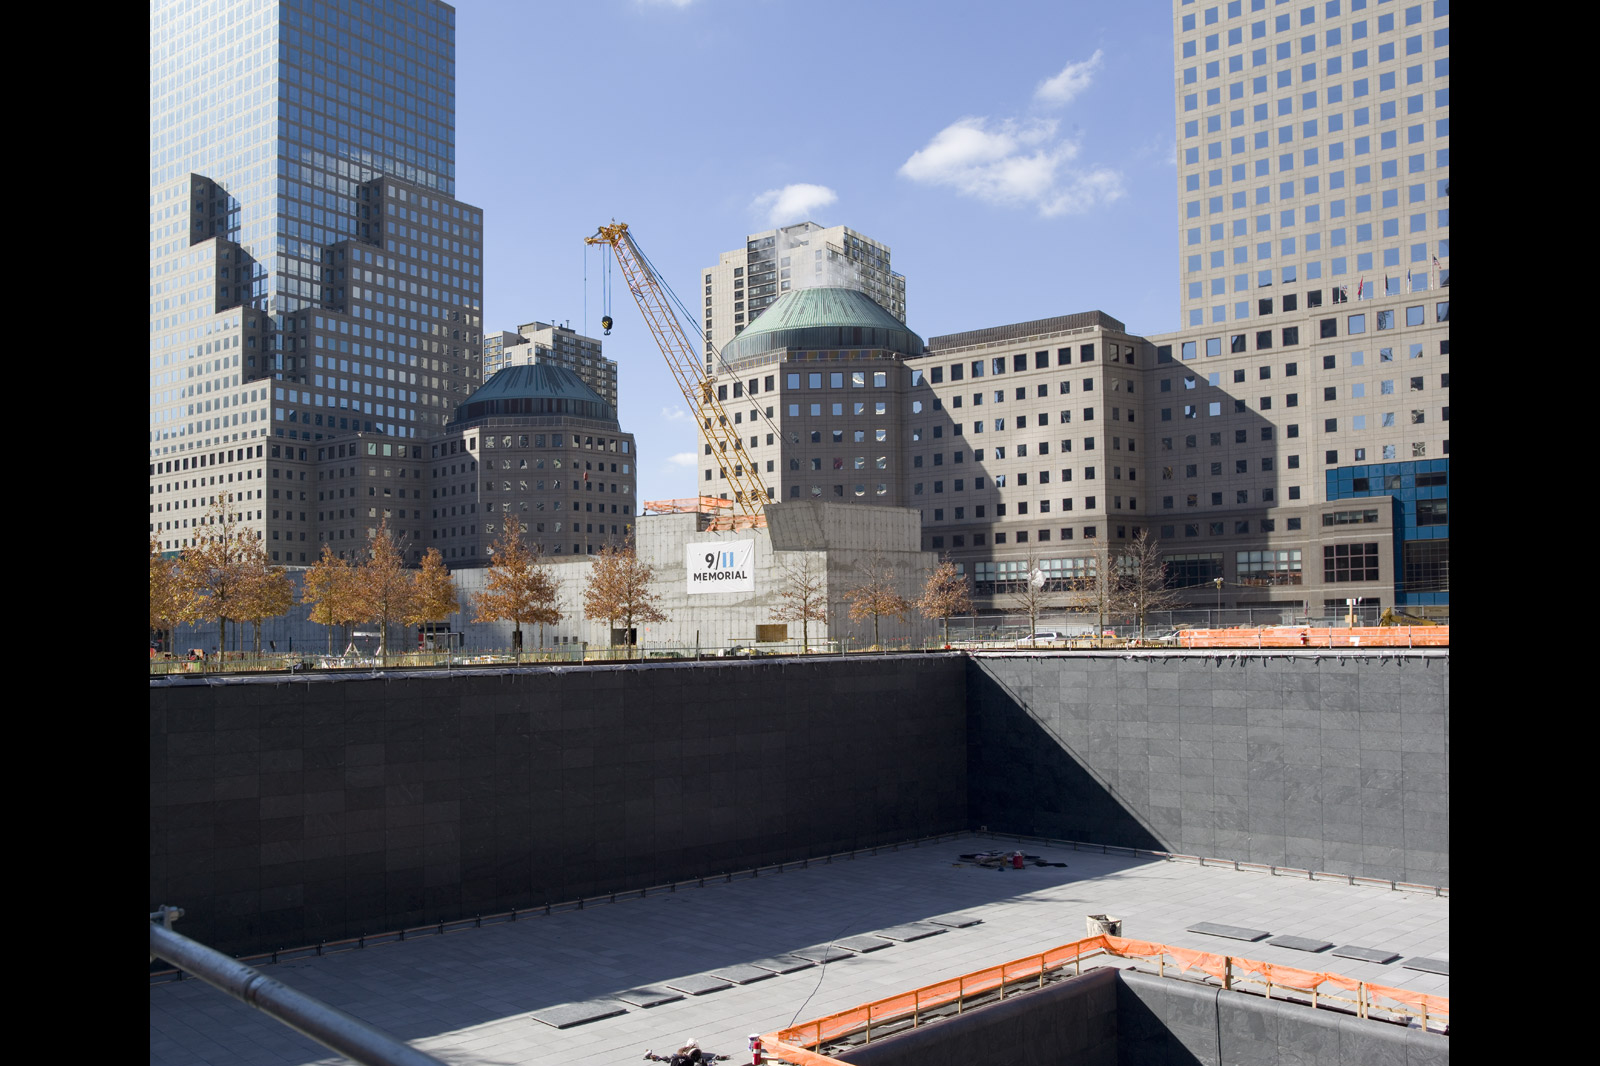 From a similar vantage point, Meyerowitz made this photograph shortly after white oaks had been planted on the site as part of the 9/11 memorial